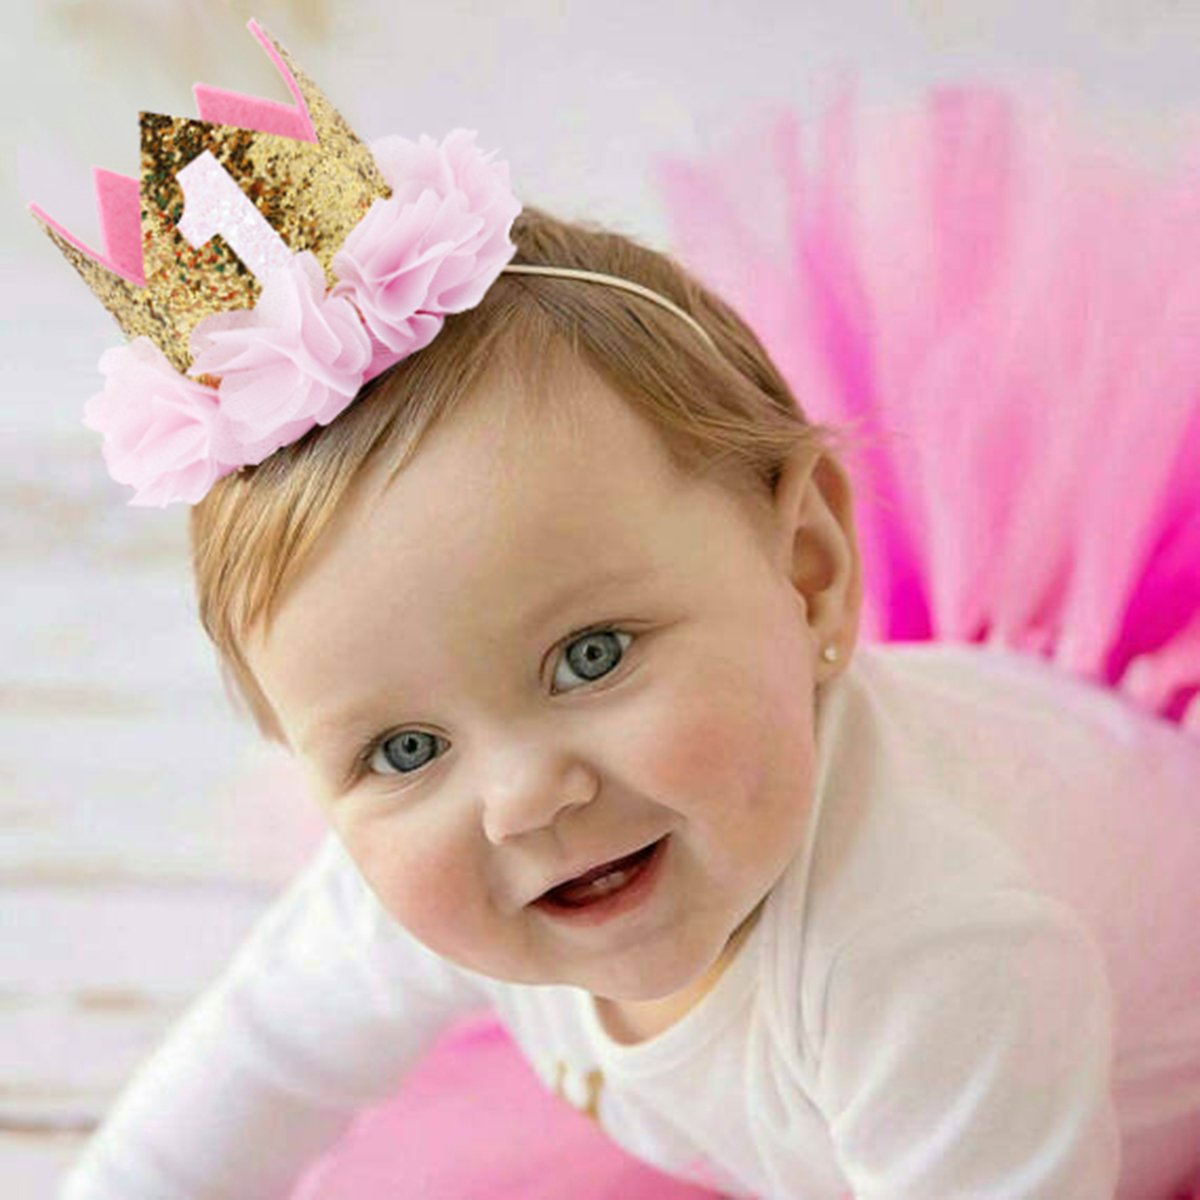 COUXILY Babys Birthday Hat Headband Princess Crown Party Tiara Hair Accessory FS02